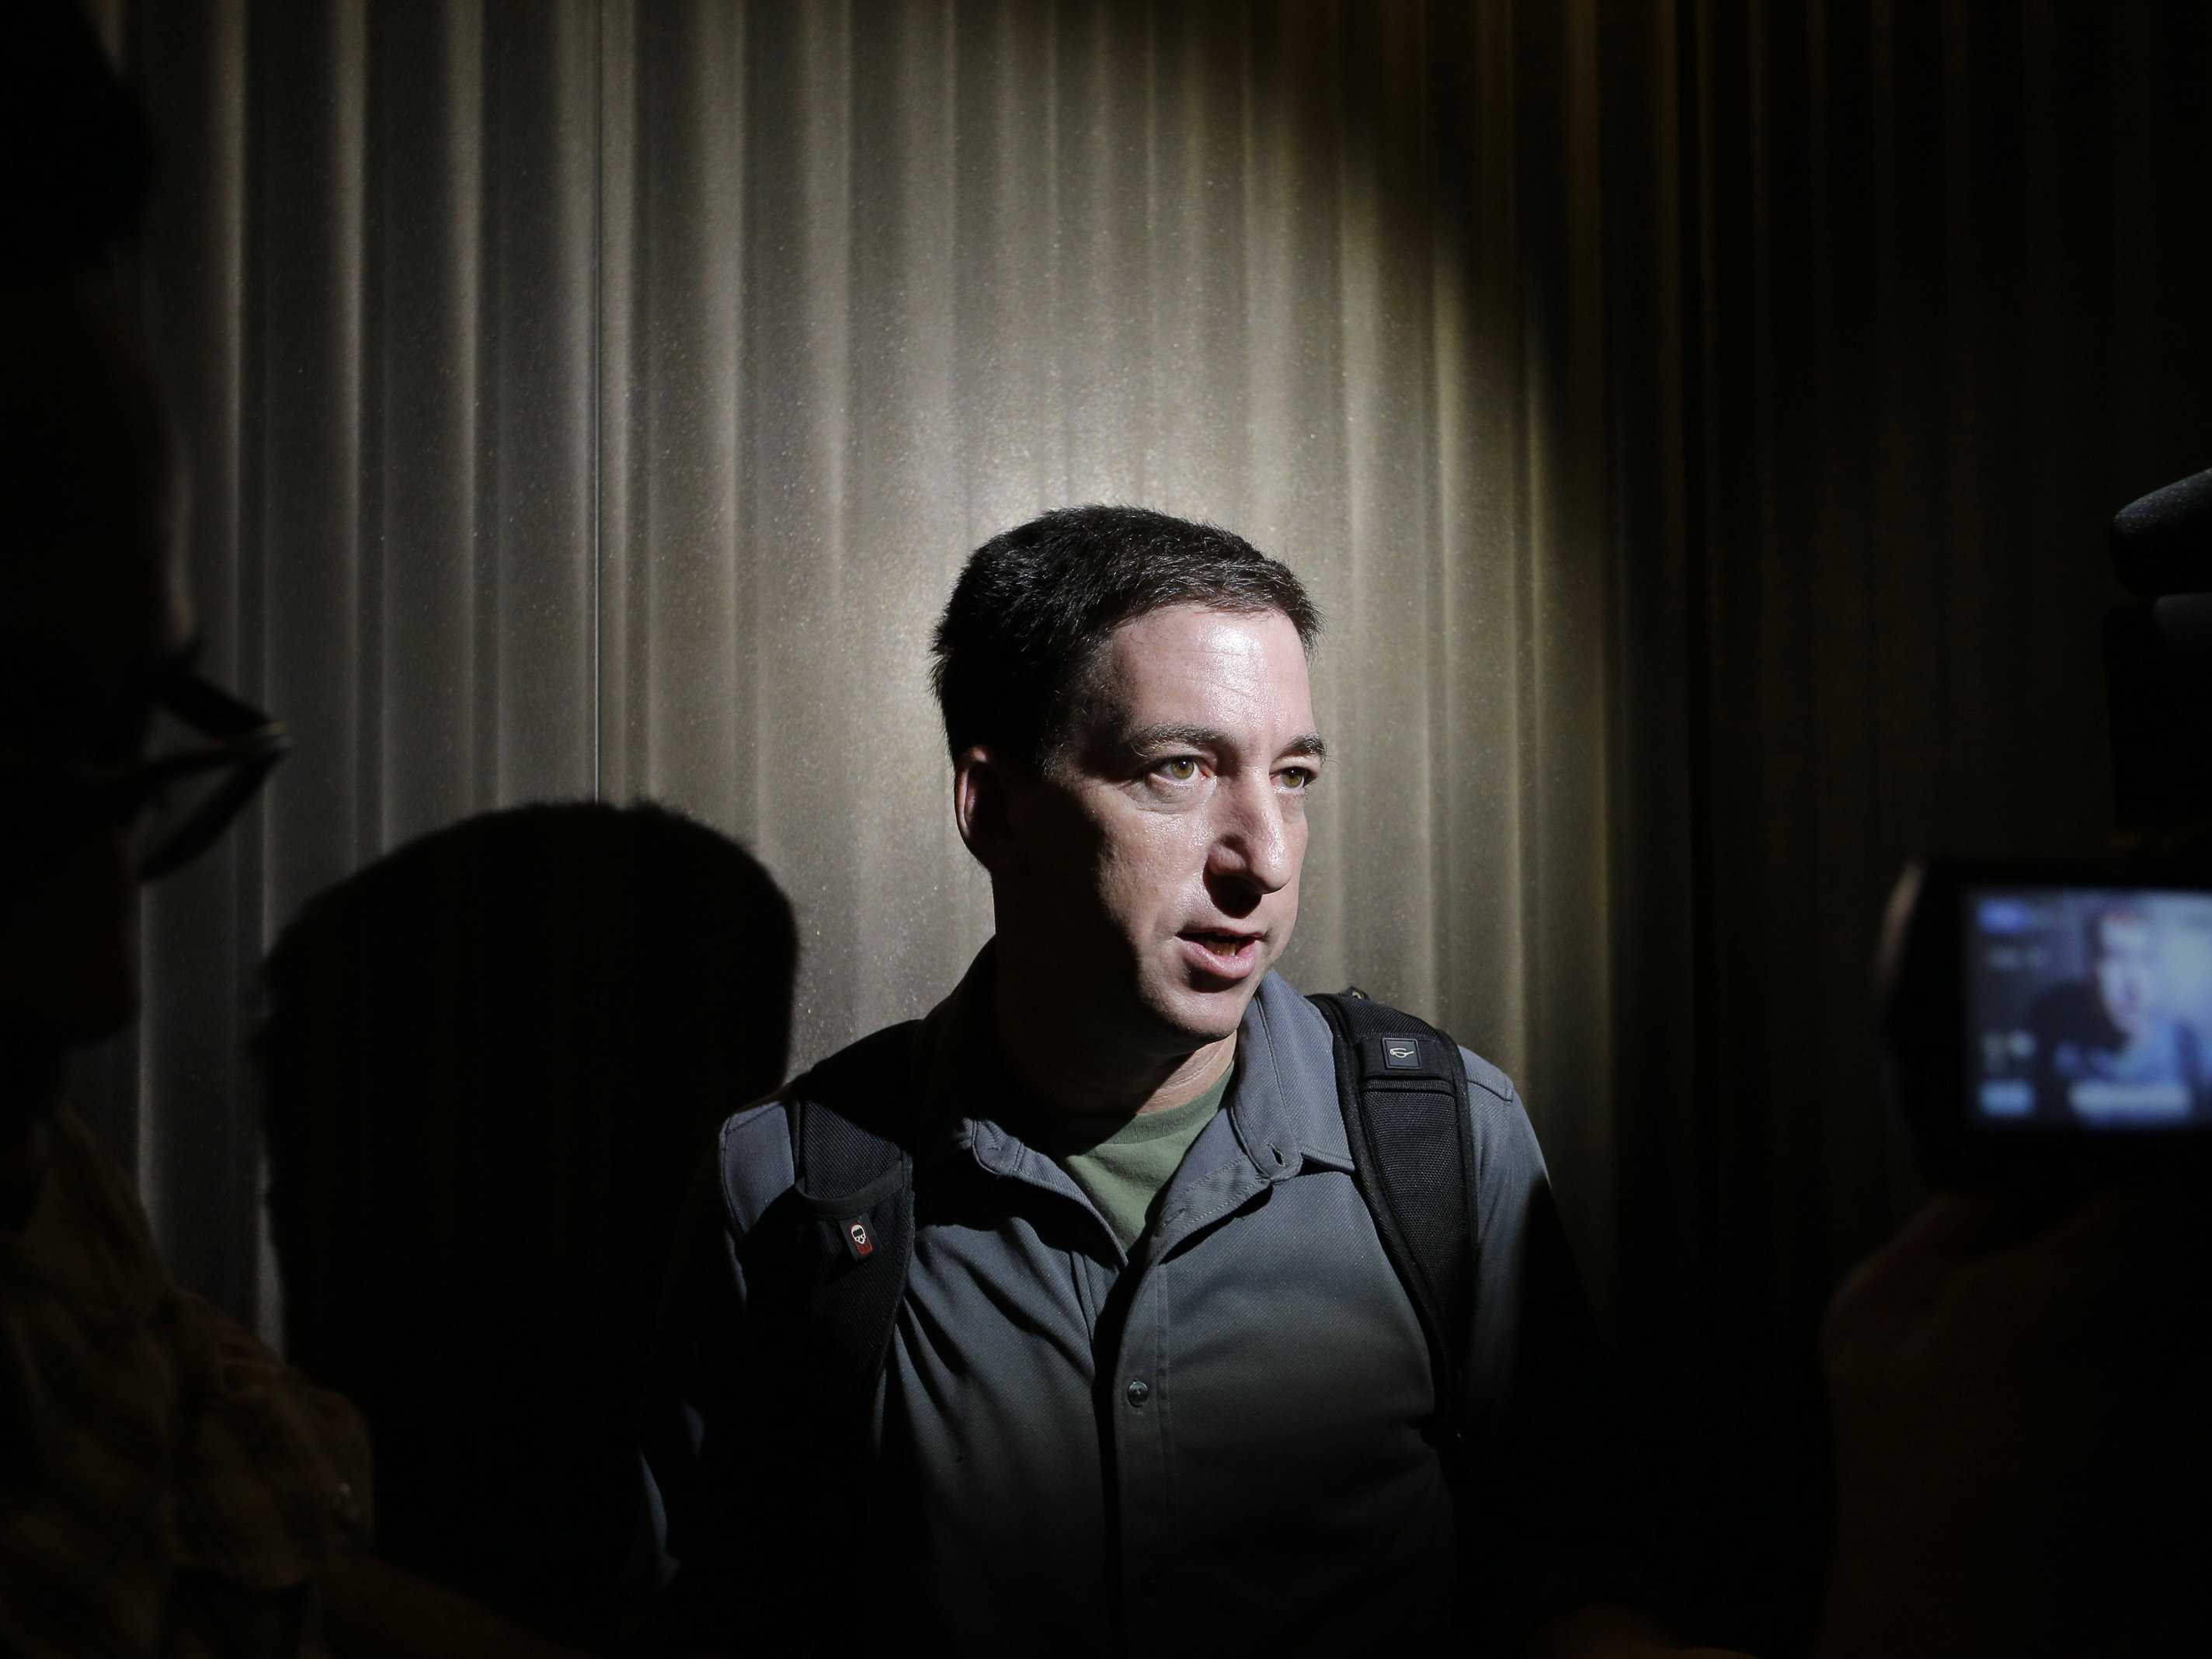 Greenwald Quits Guardian For Independent News Project